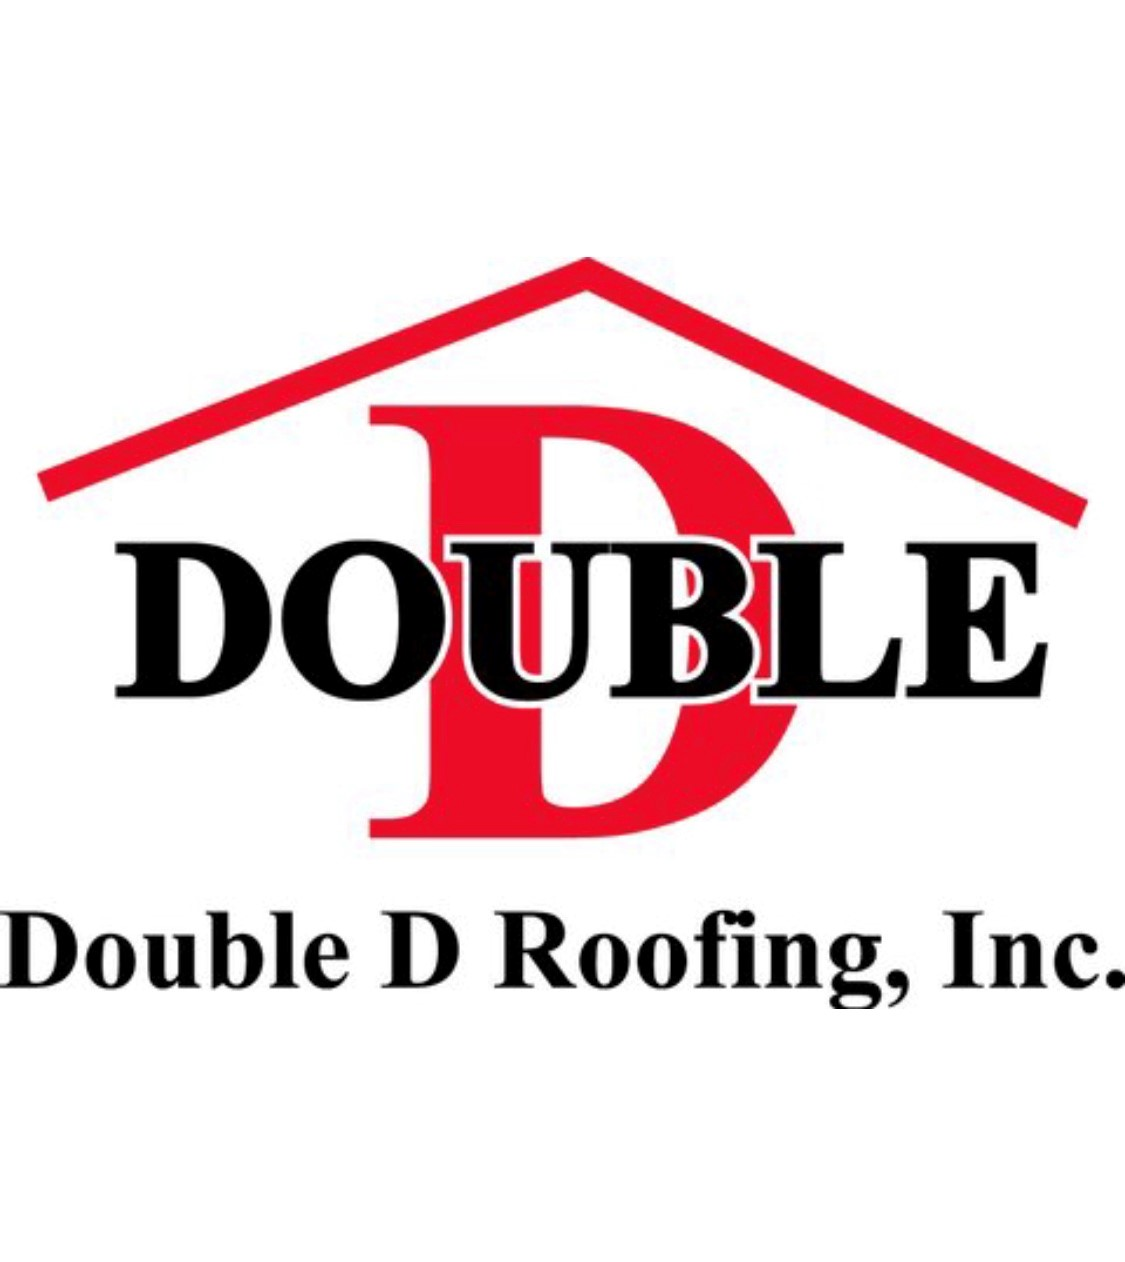 Double-D-Roofing.jpg